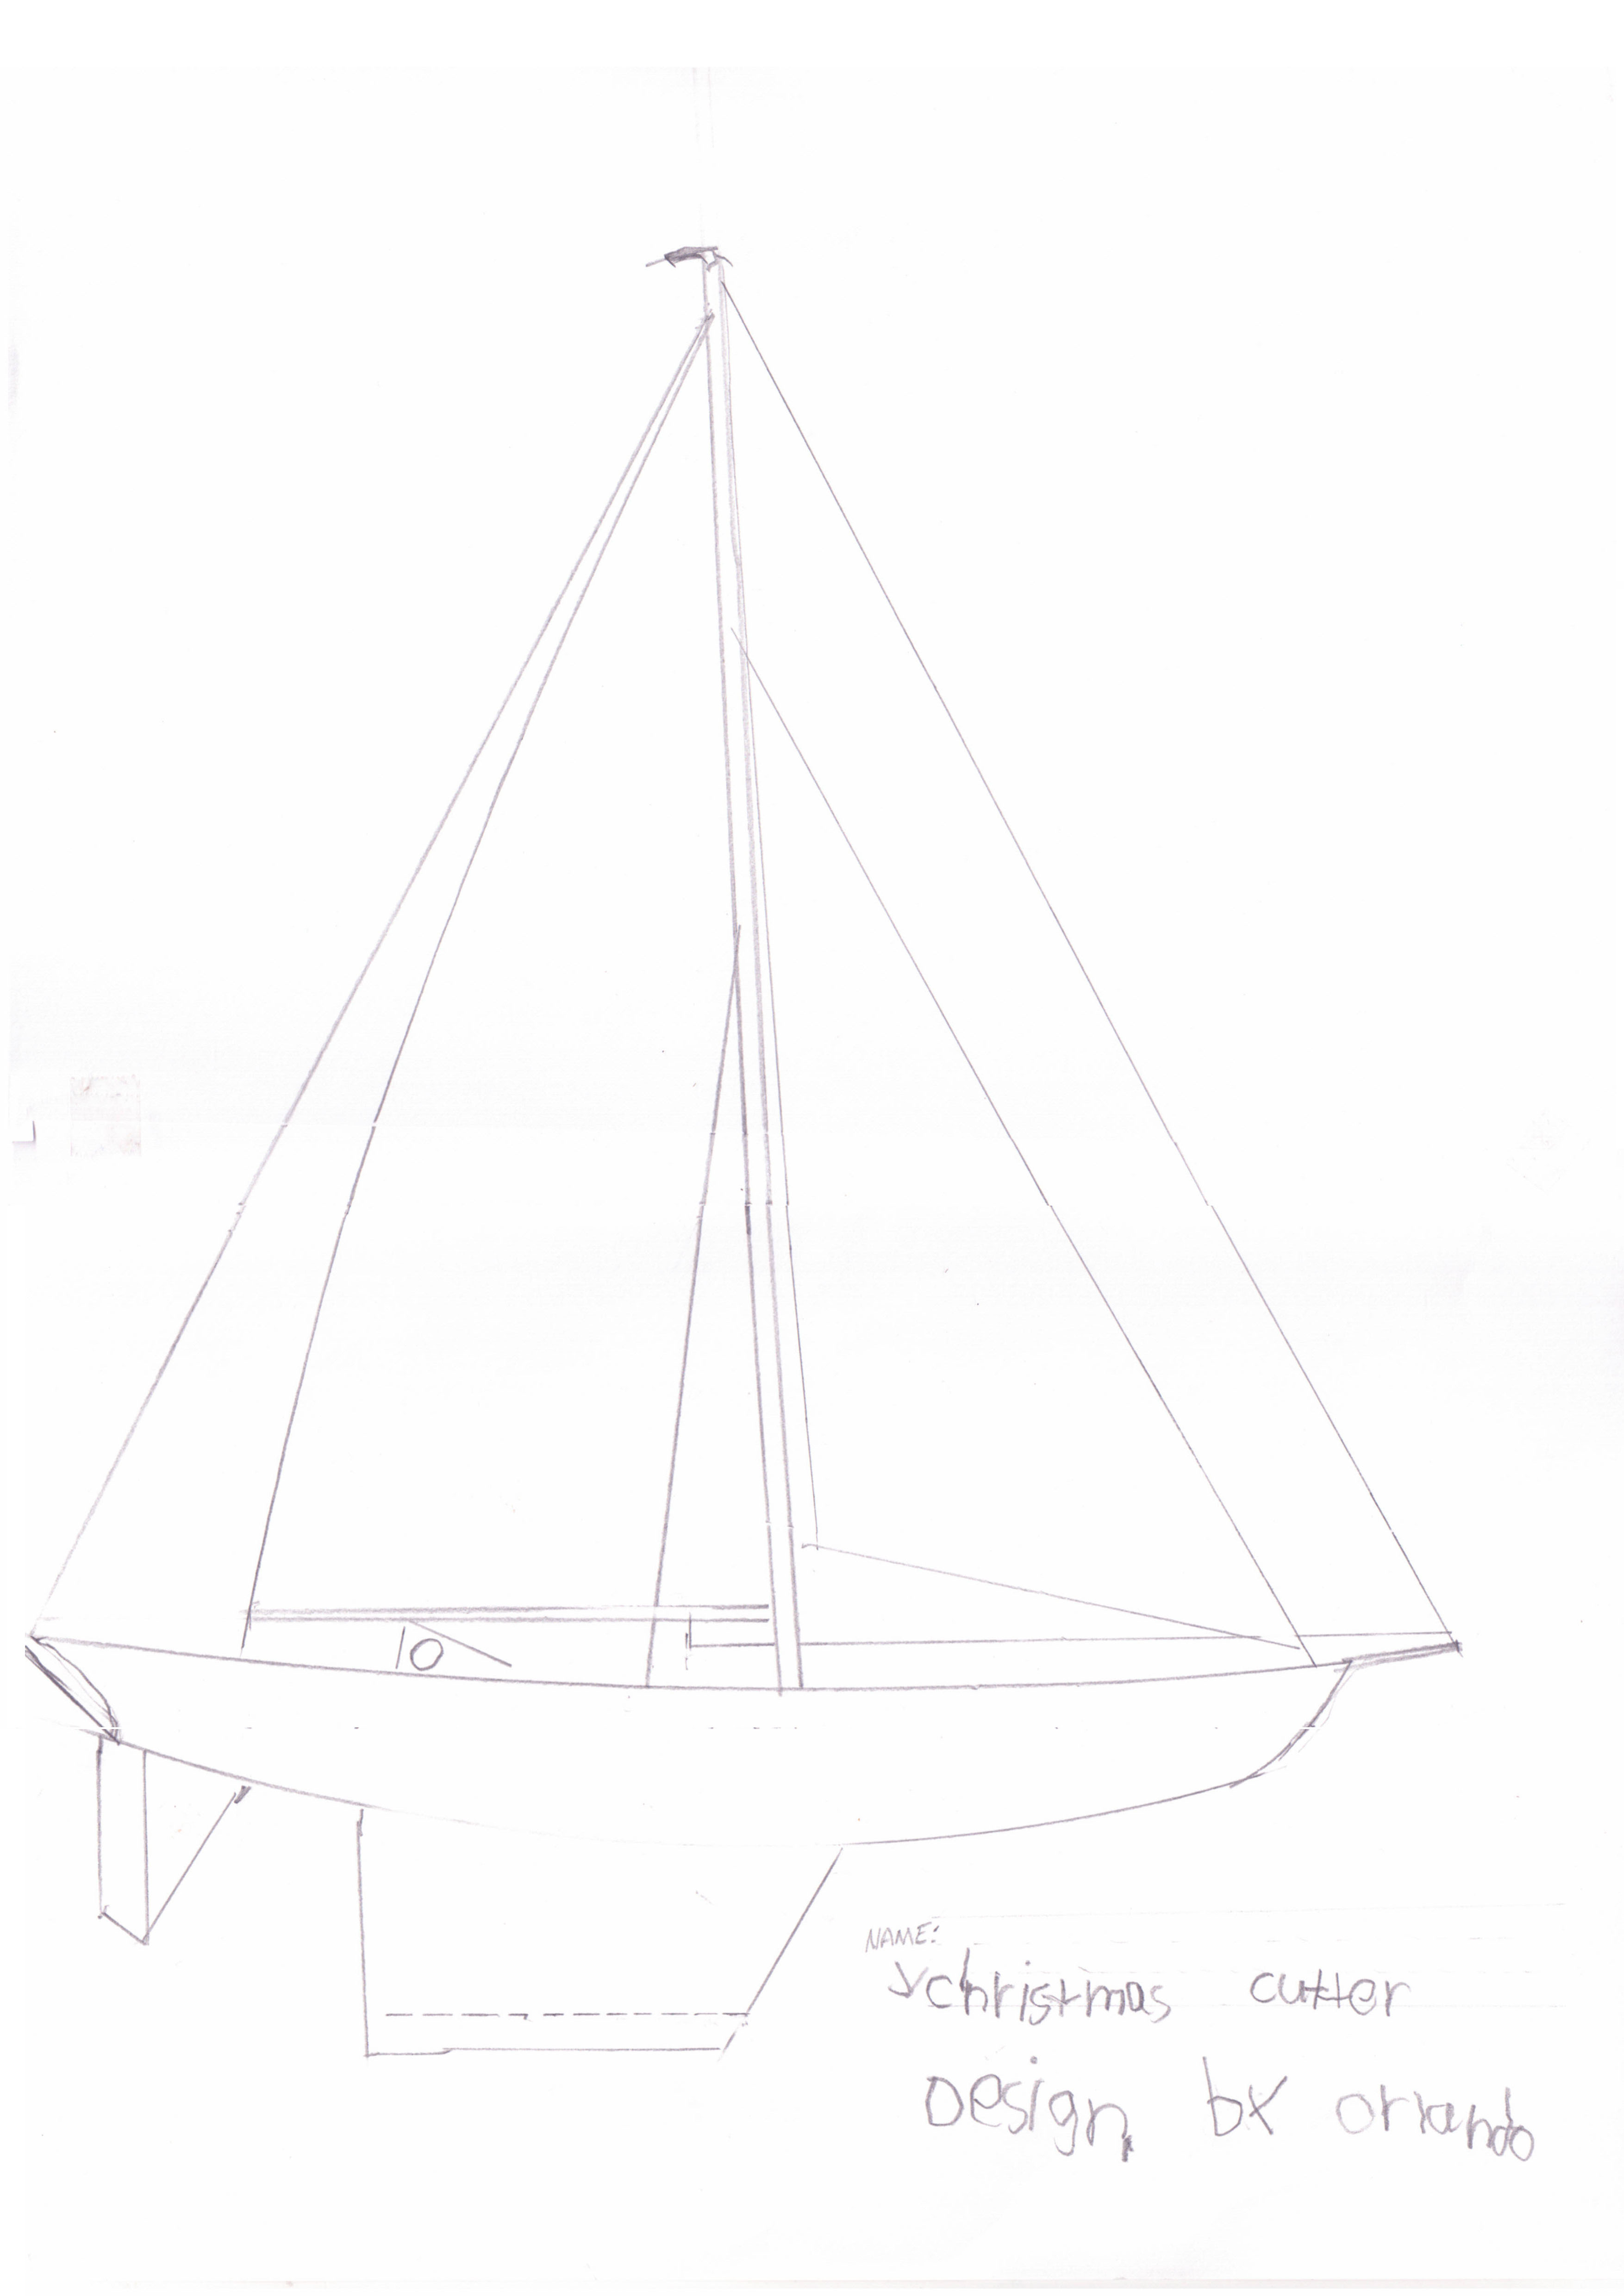 http://perryboat.sail2live.com/yacht_design_according_to_perry/Christmas%20Cutter%20by%20Orlando.jpg